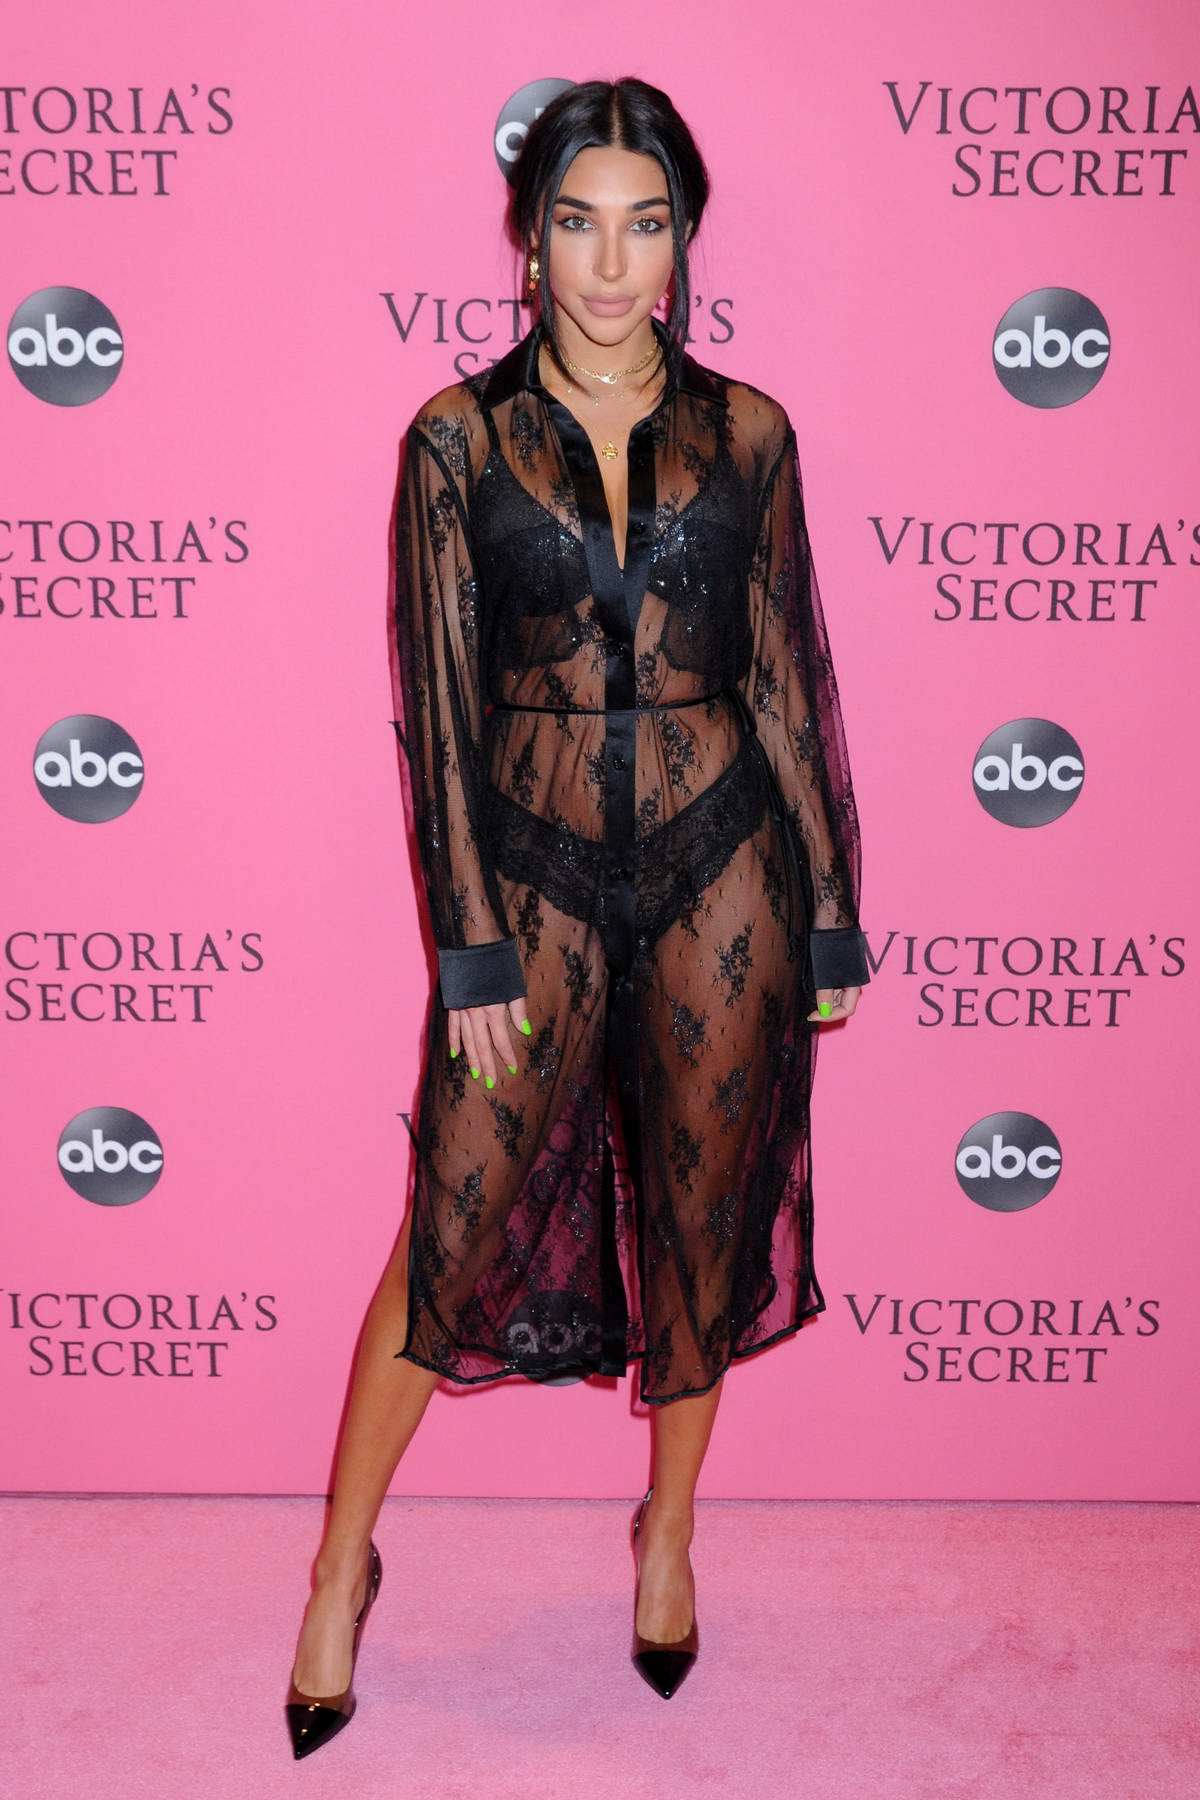 Chantel Jeffries attends the 2018 Victoria's Secret Fashion Show at Pier 94 in New York City